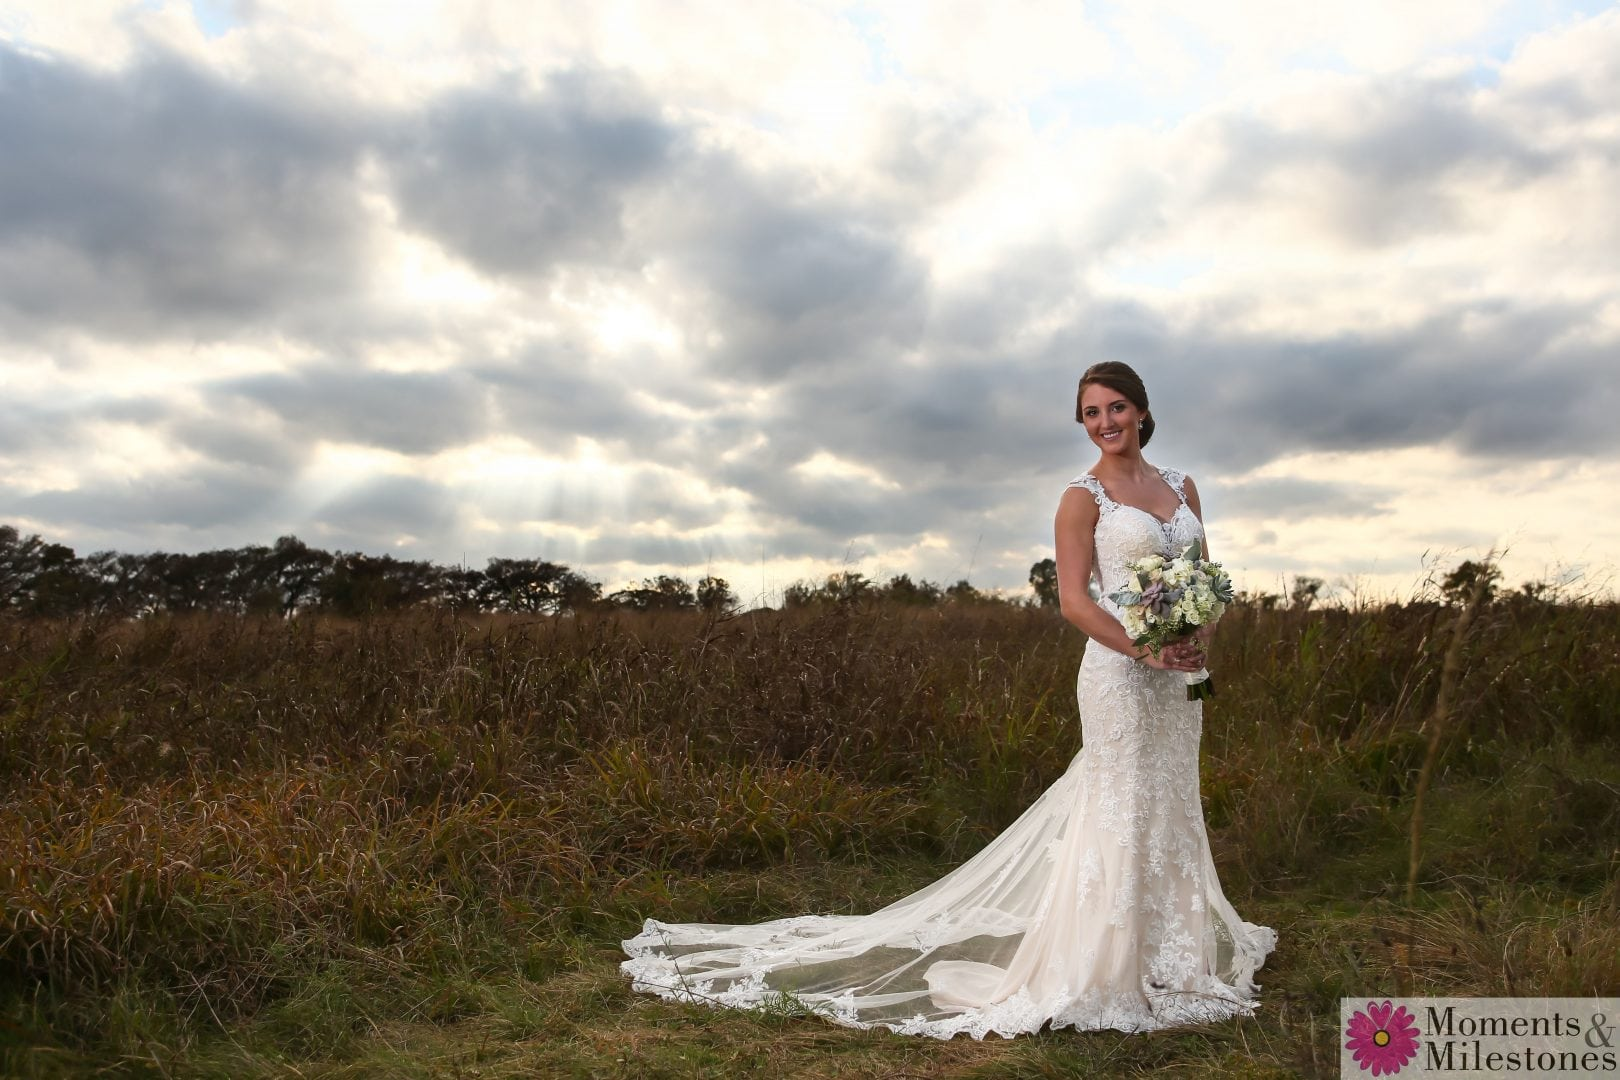 Morgan's STUNNING Bridal Session